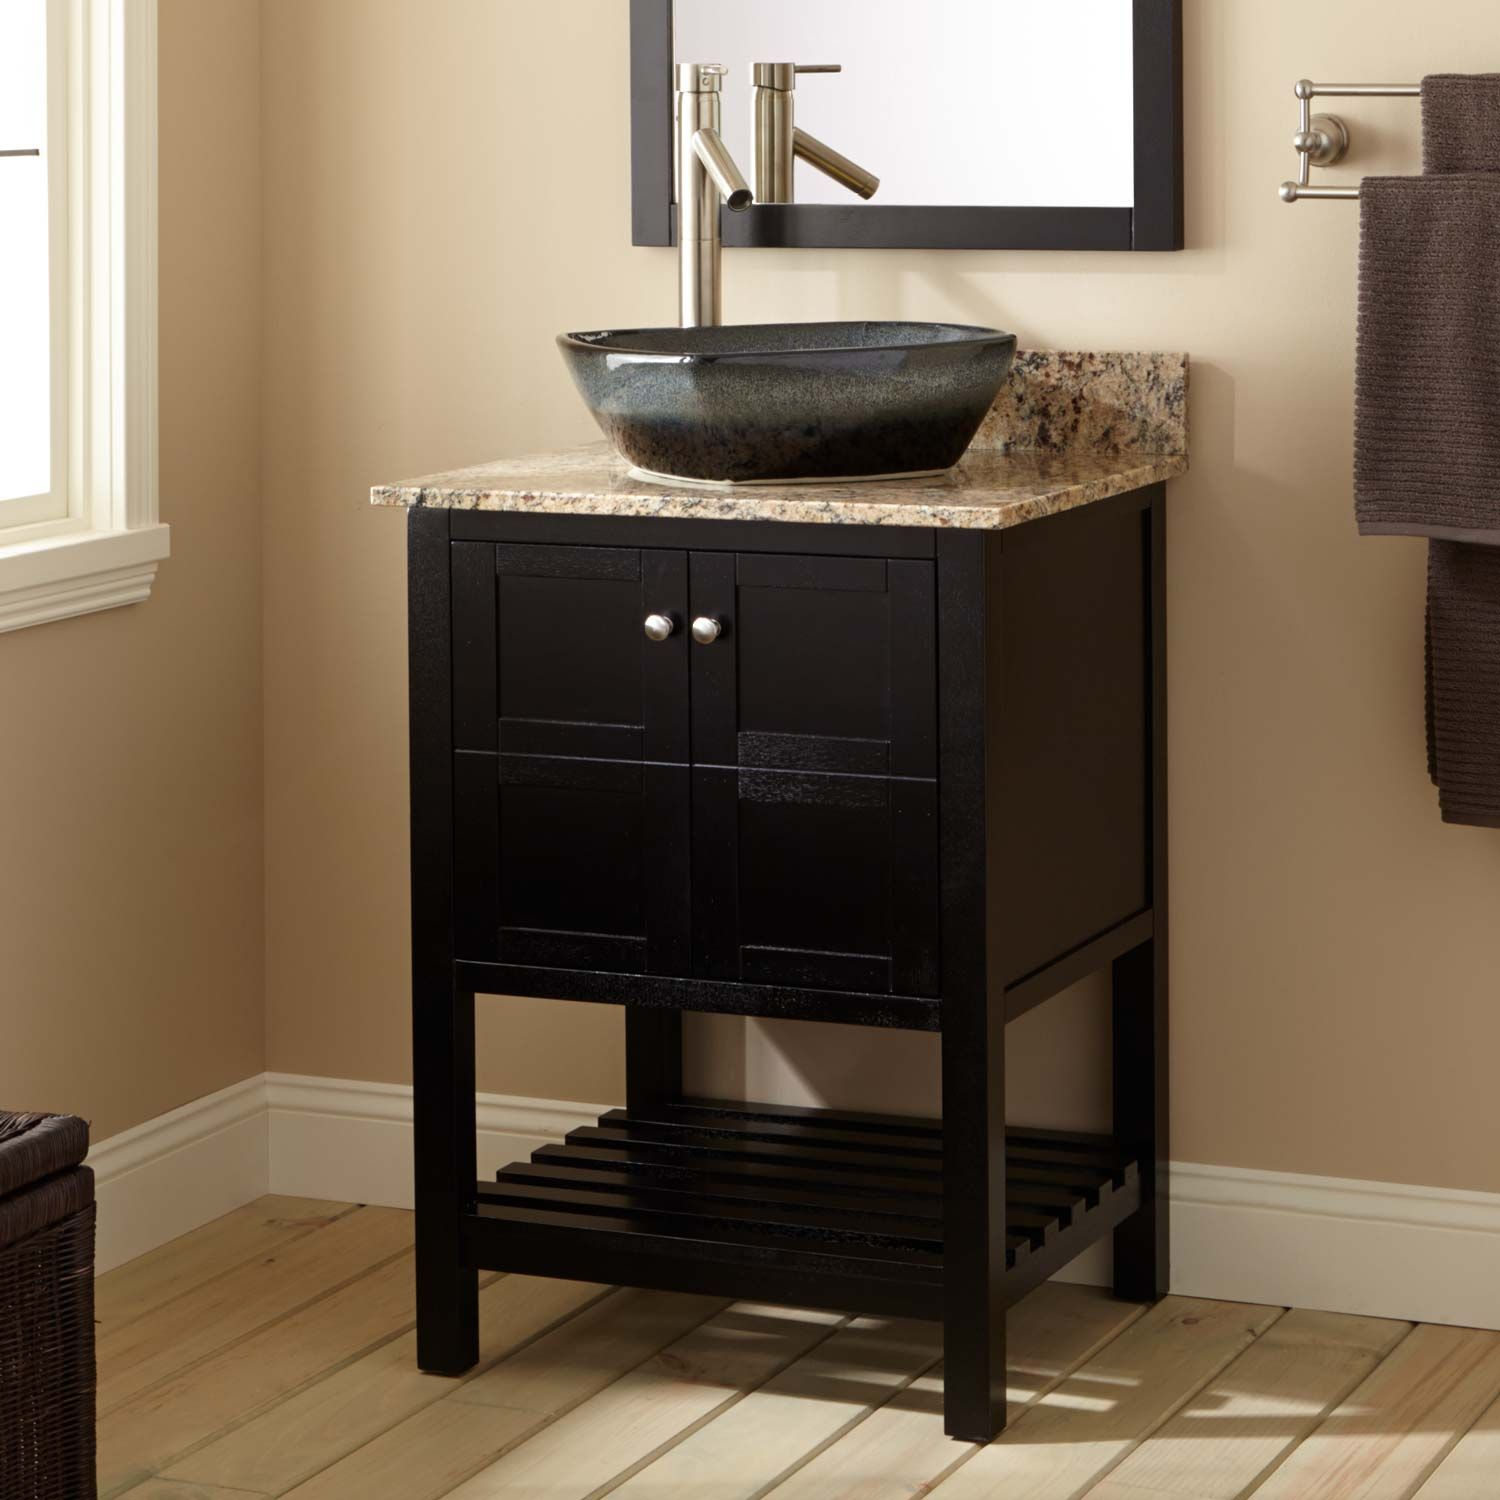 "24"" Everett Vessel Sink Vanity - Black"